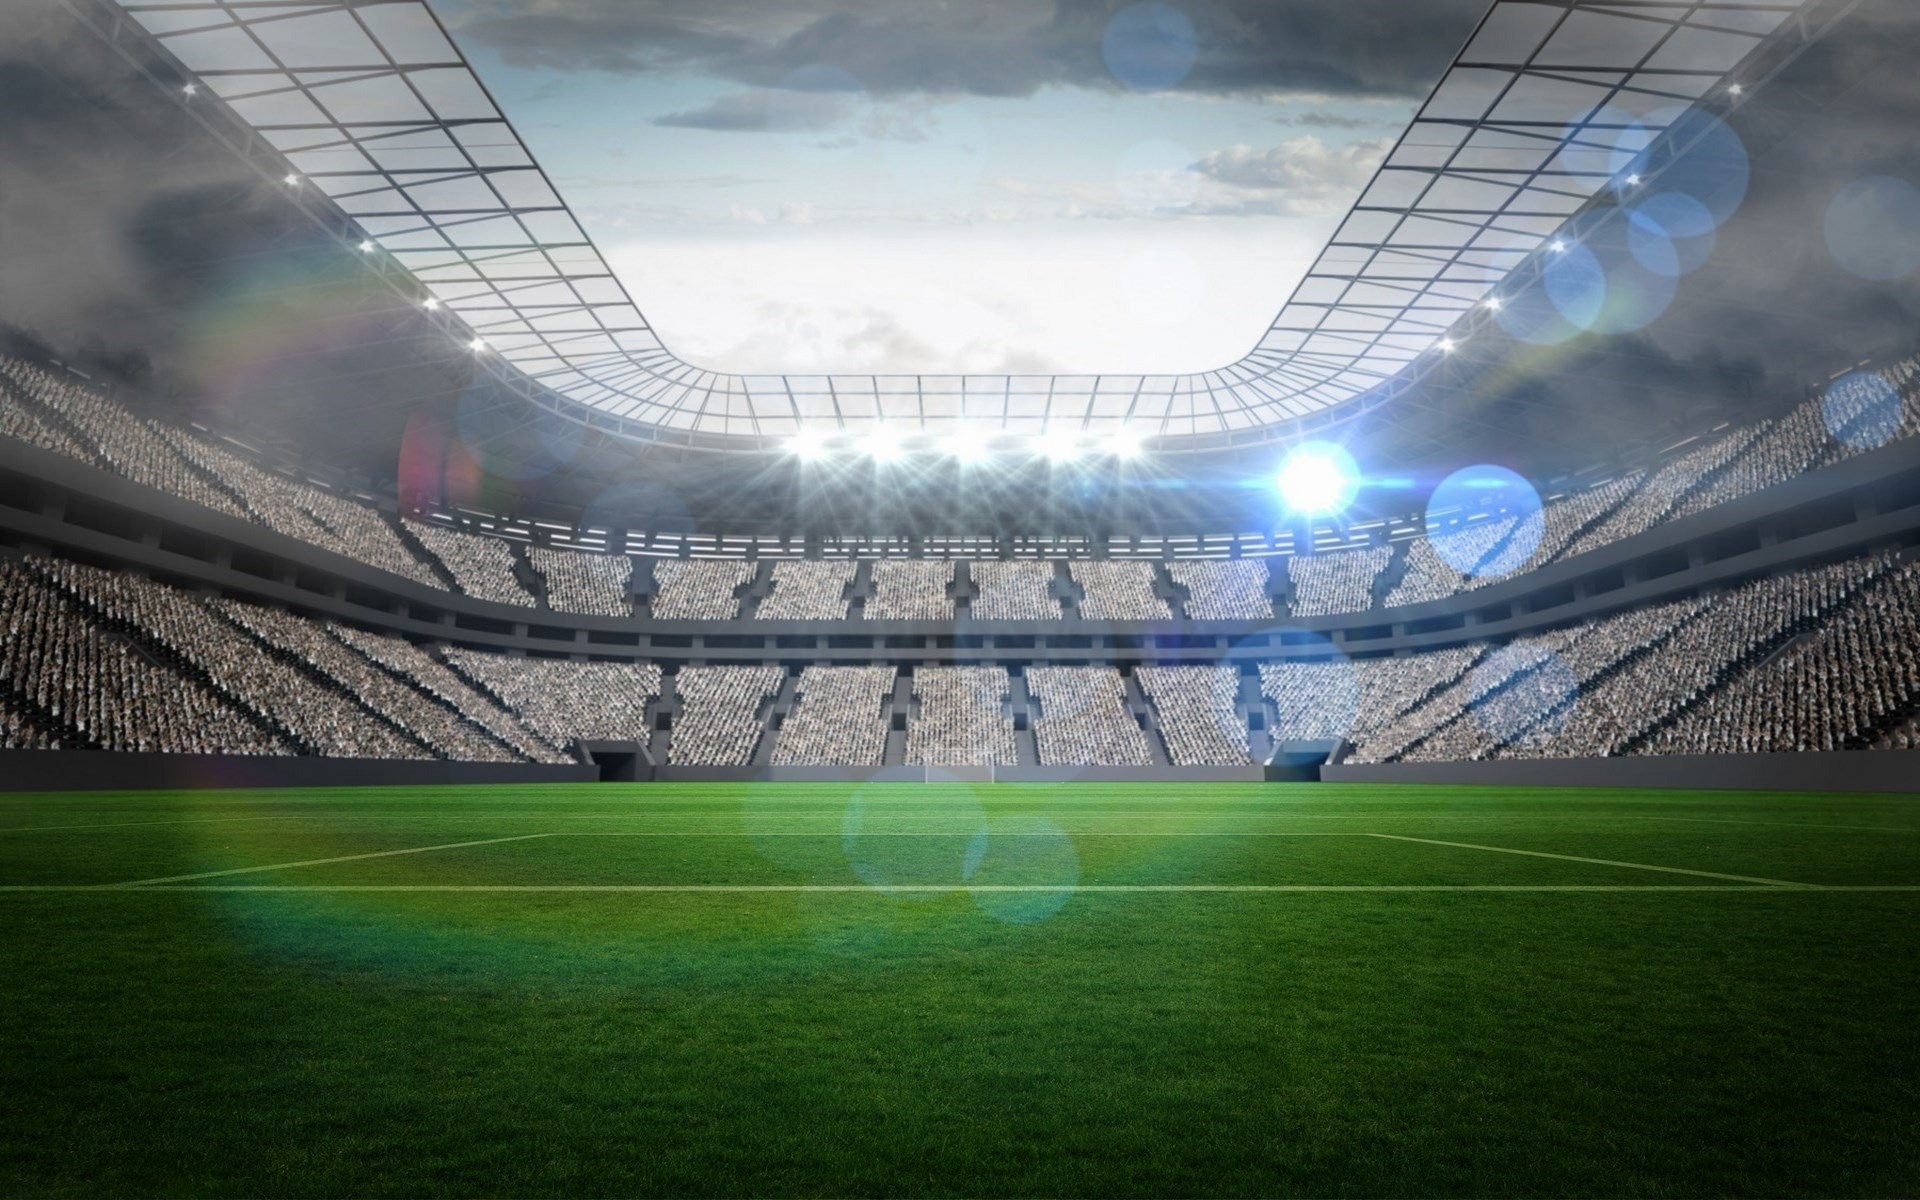 Football Stadium Wallpaper 1